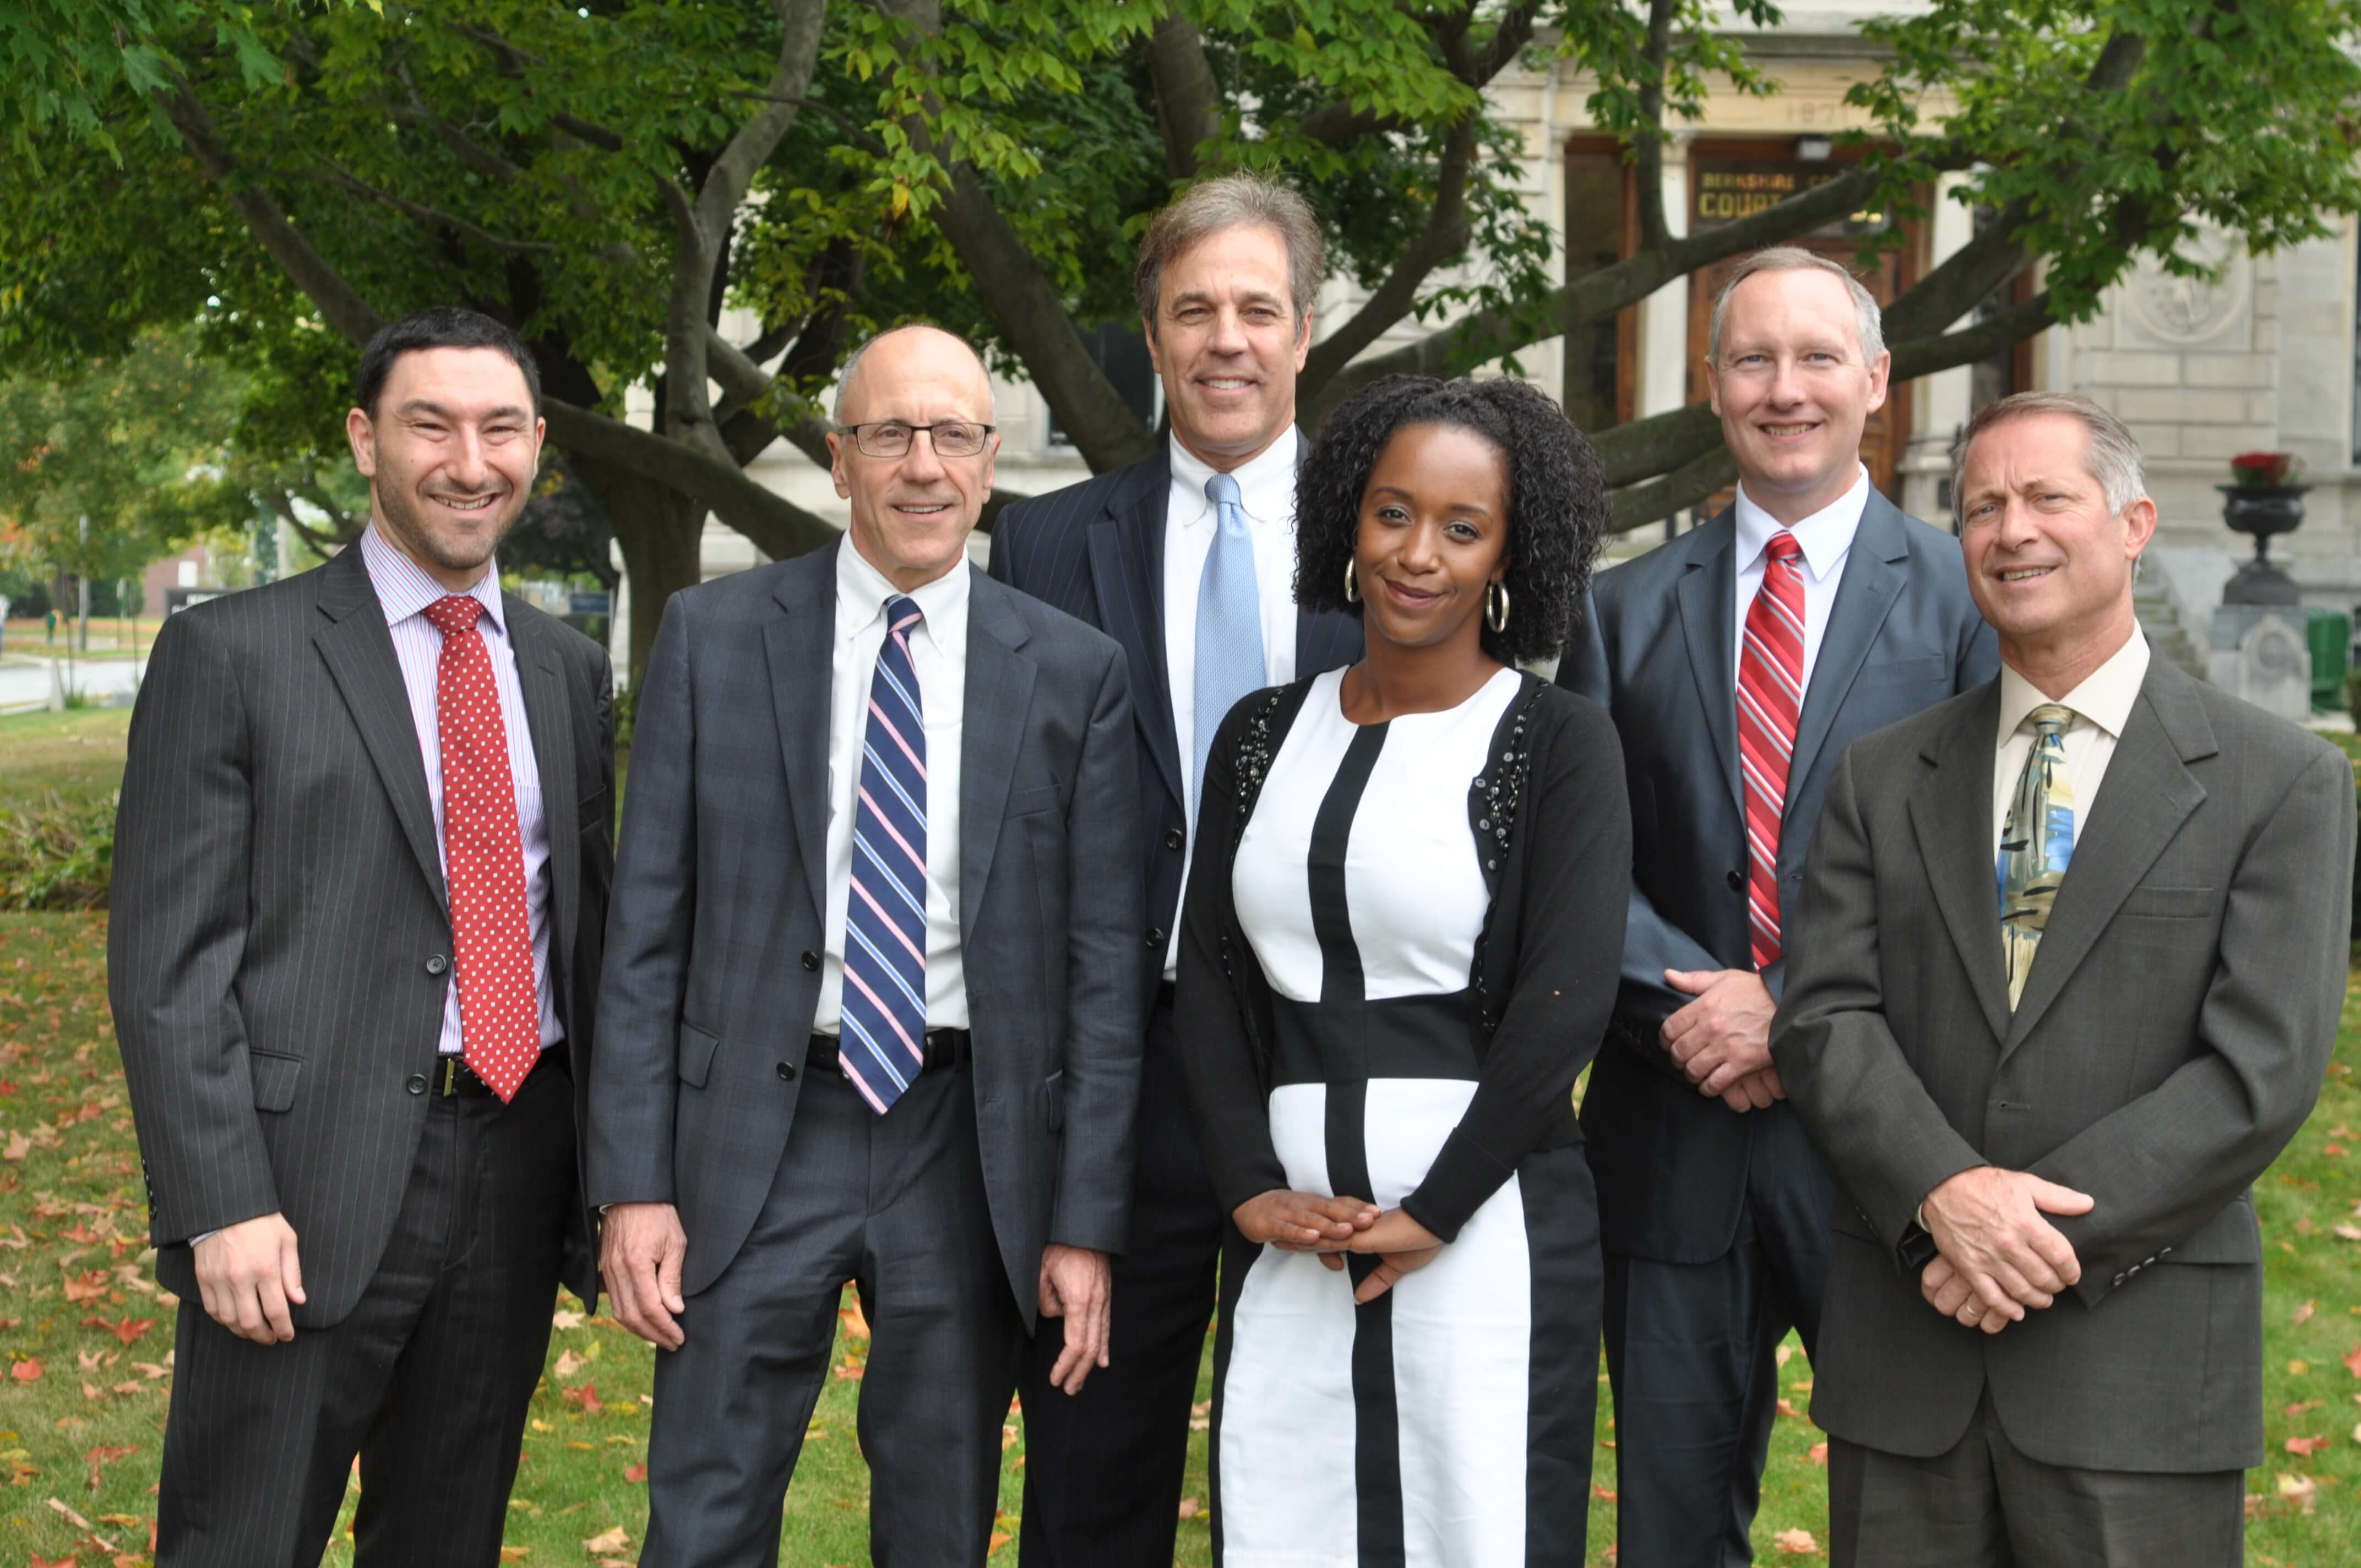 Attorney Matt Mozian, Tom Campoli, Peri Campoli, Scott Ellis, Robert Monteleone, Jr. with Myia Gaulden in Pittsfield, MA